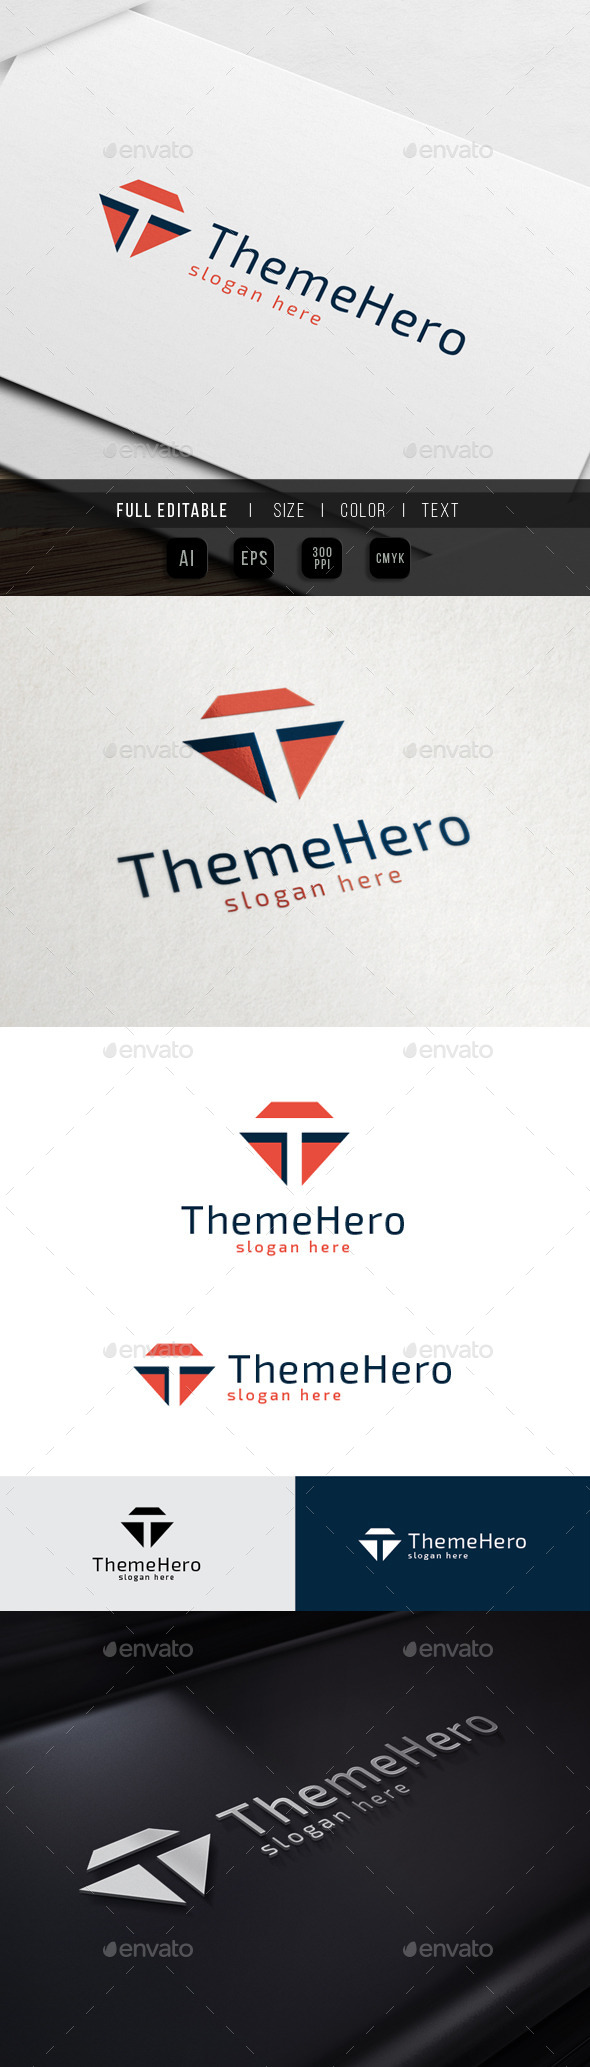 GraphicRiver Theme Hero Letter T 10547443